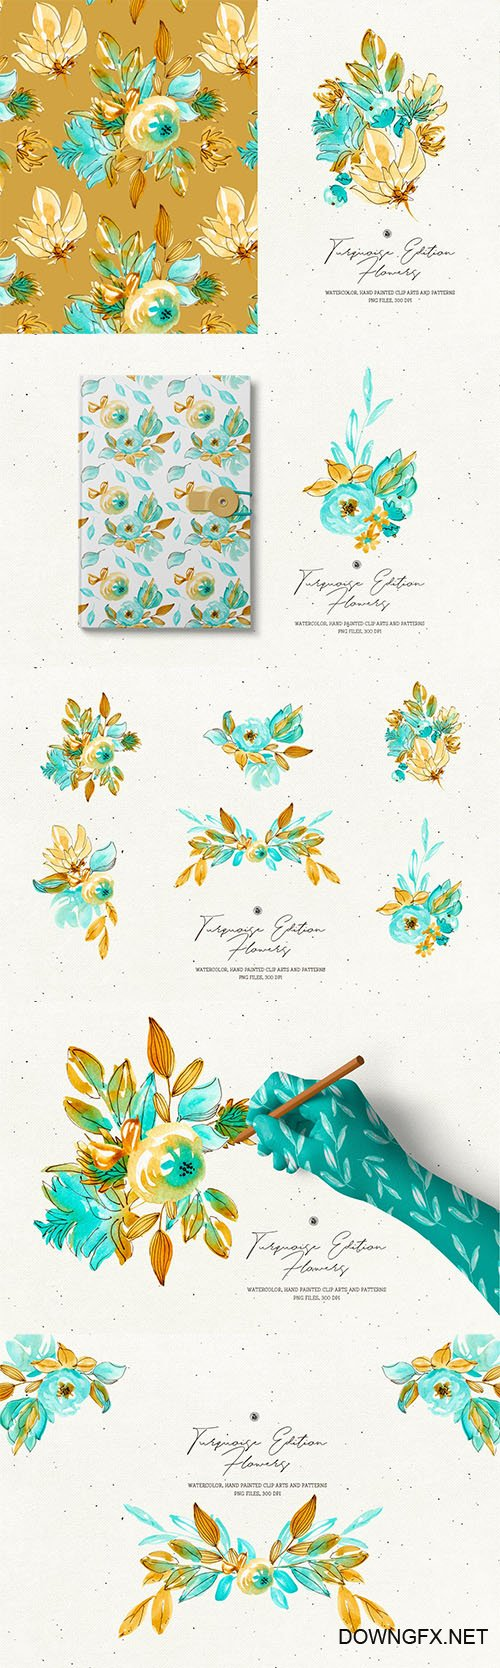 Turquoise Edition Flowers